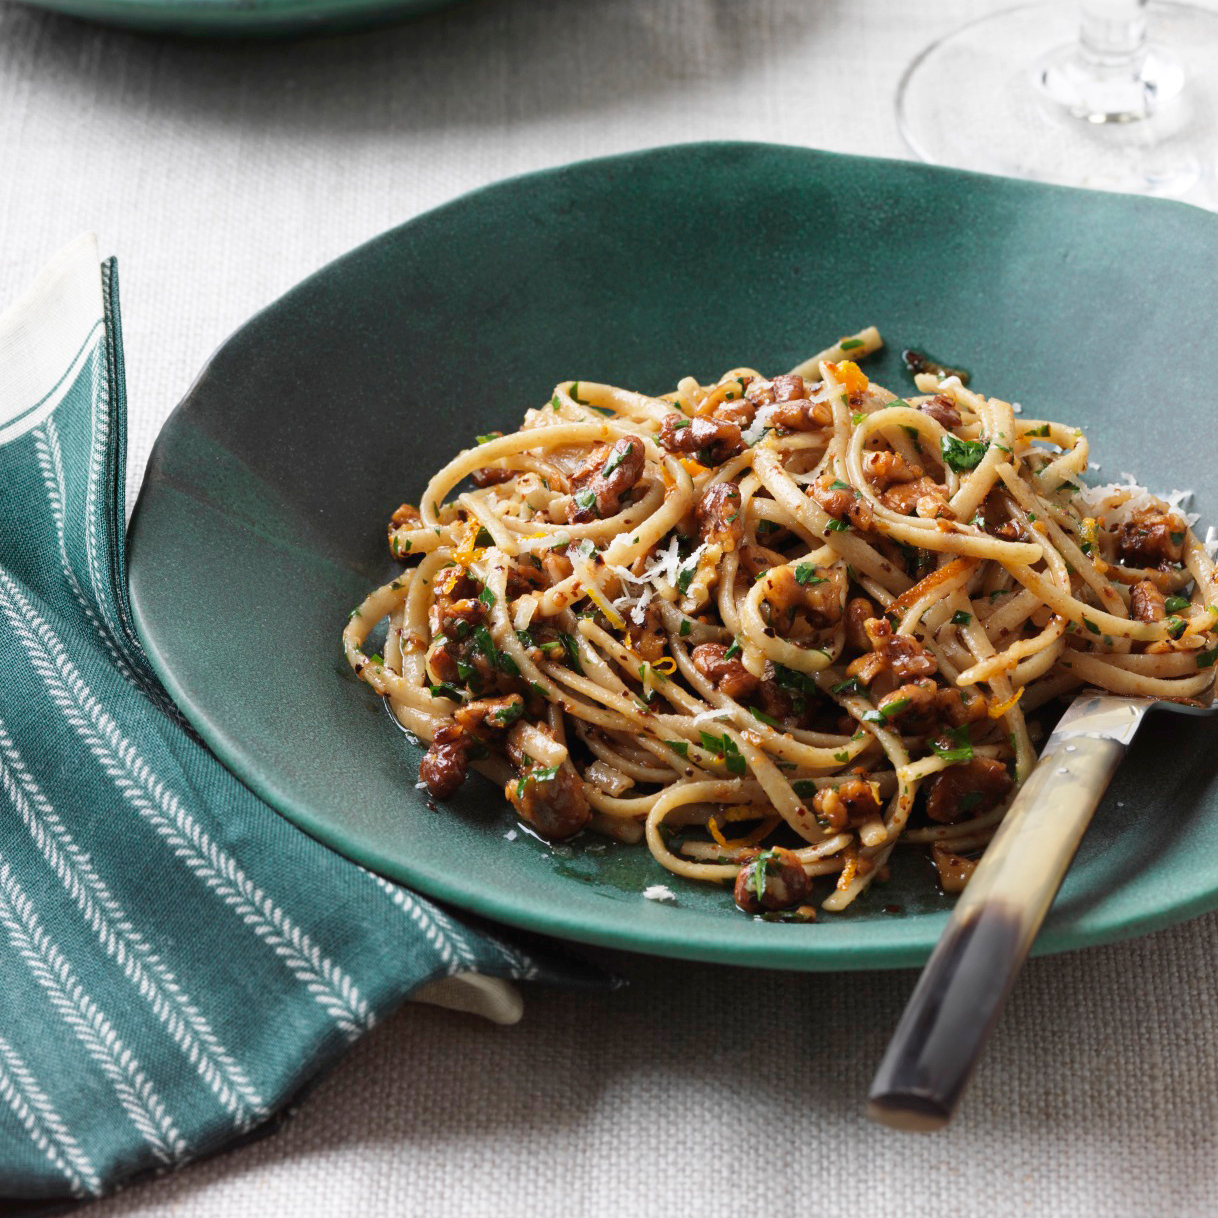 original-201204-r-whole-wheat-linguine-walnuts-orange-and-chile.jpg